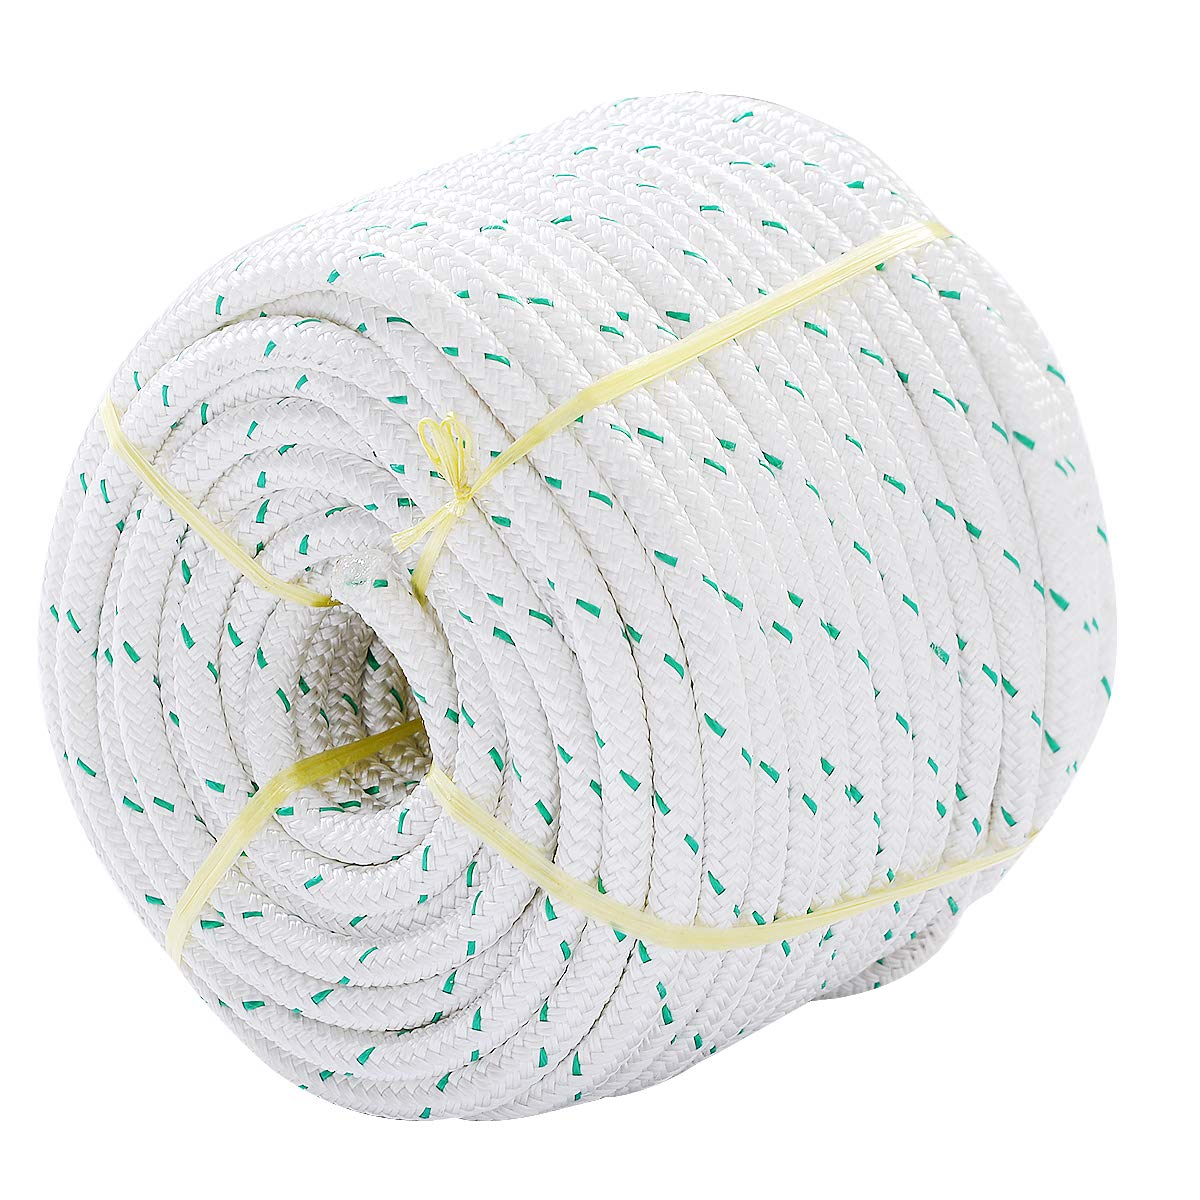 Giantex 3/7'' Durable Braid Polyester Rope, 150 ft Heavy Duty Rope for Tie, Pull, Swing, Climb and Knot, High Strength Arborist Rope w/ 5953 lbs Breaking Strength, White by Giantex